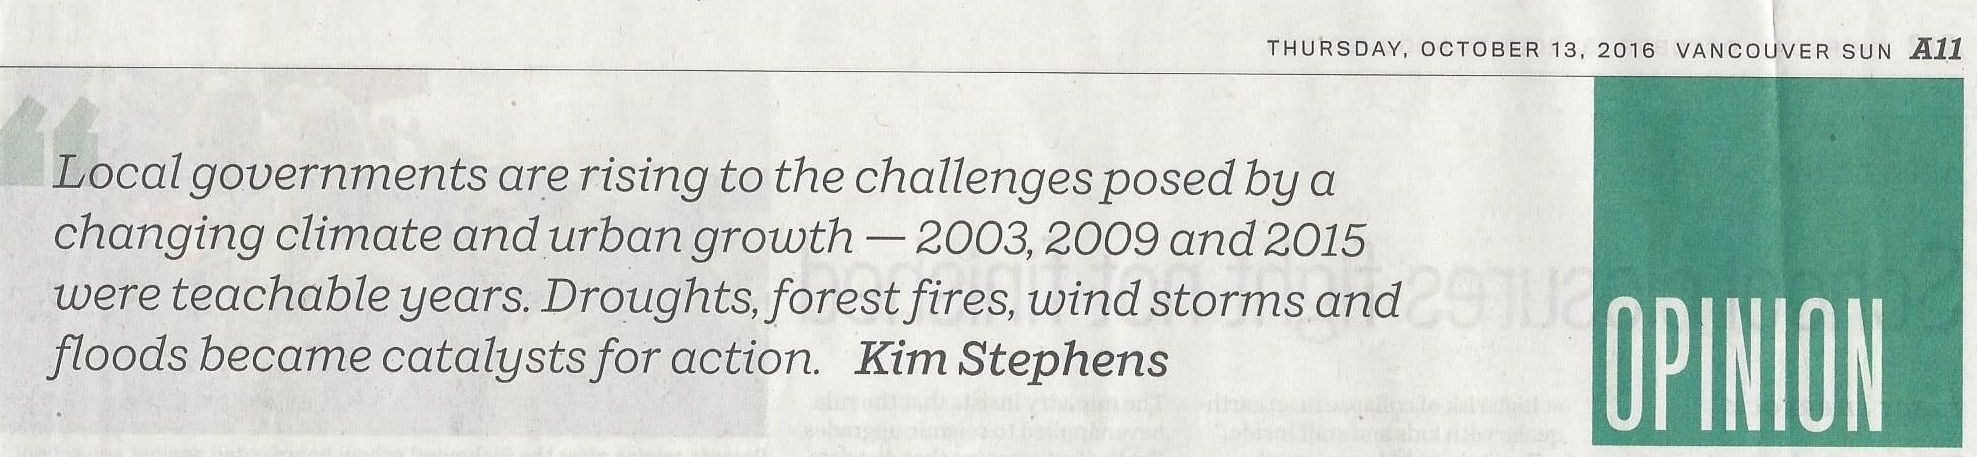 Vancouver Sun Op-Ed_Kim Stephens_Oct2016_quote